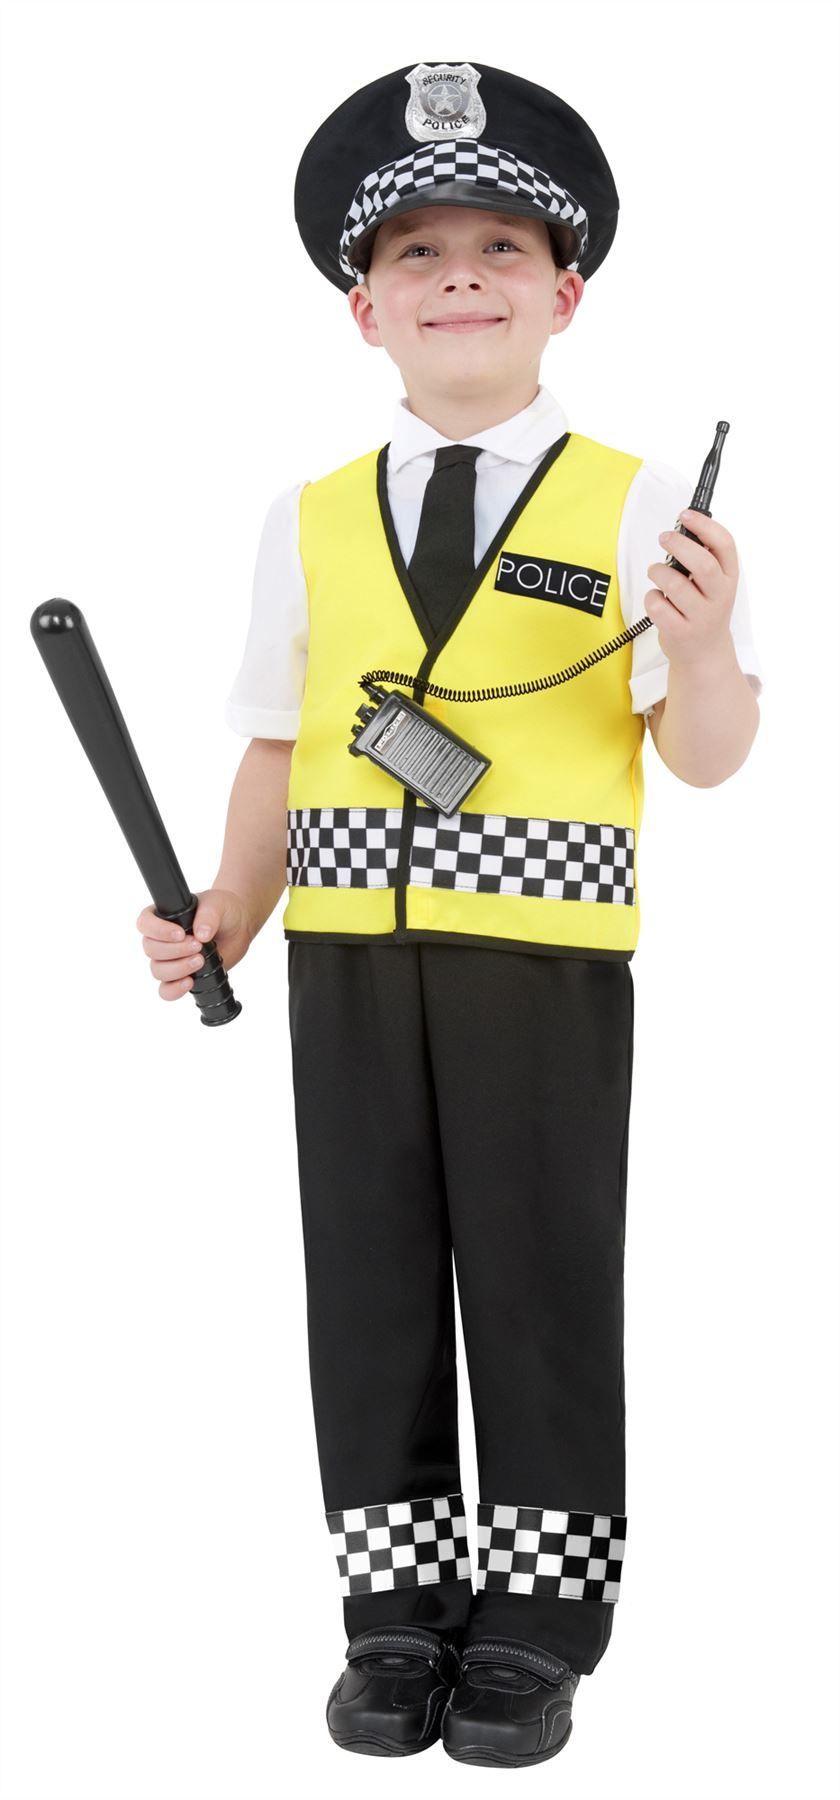 POLICE SET Try our brand new high quality Police Set which will be perfect for your fancy dress parties, Hen Parties days or even an accessory to add to your costume. One size fits most high quality.